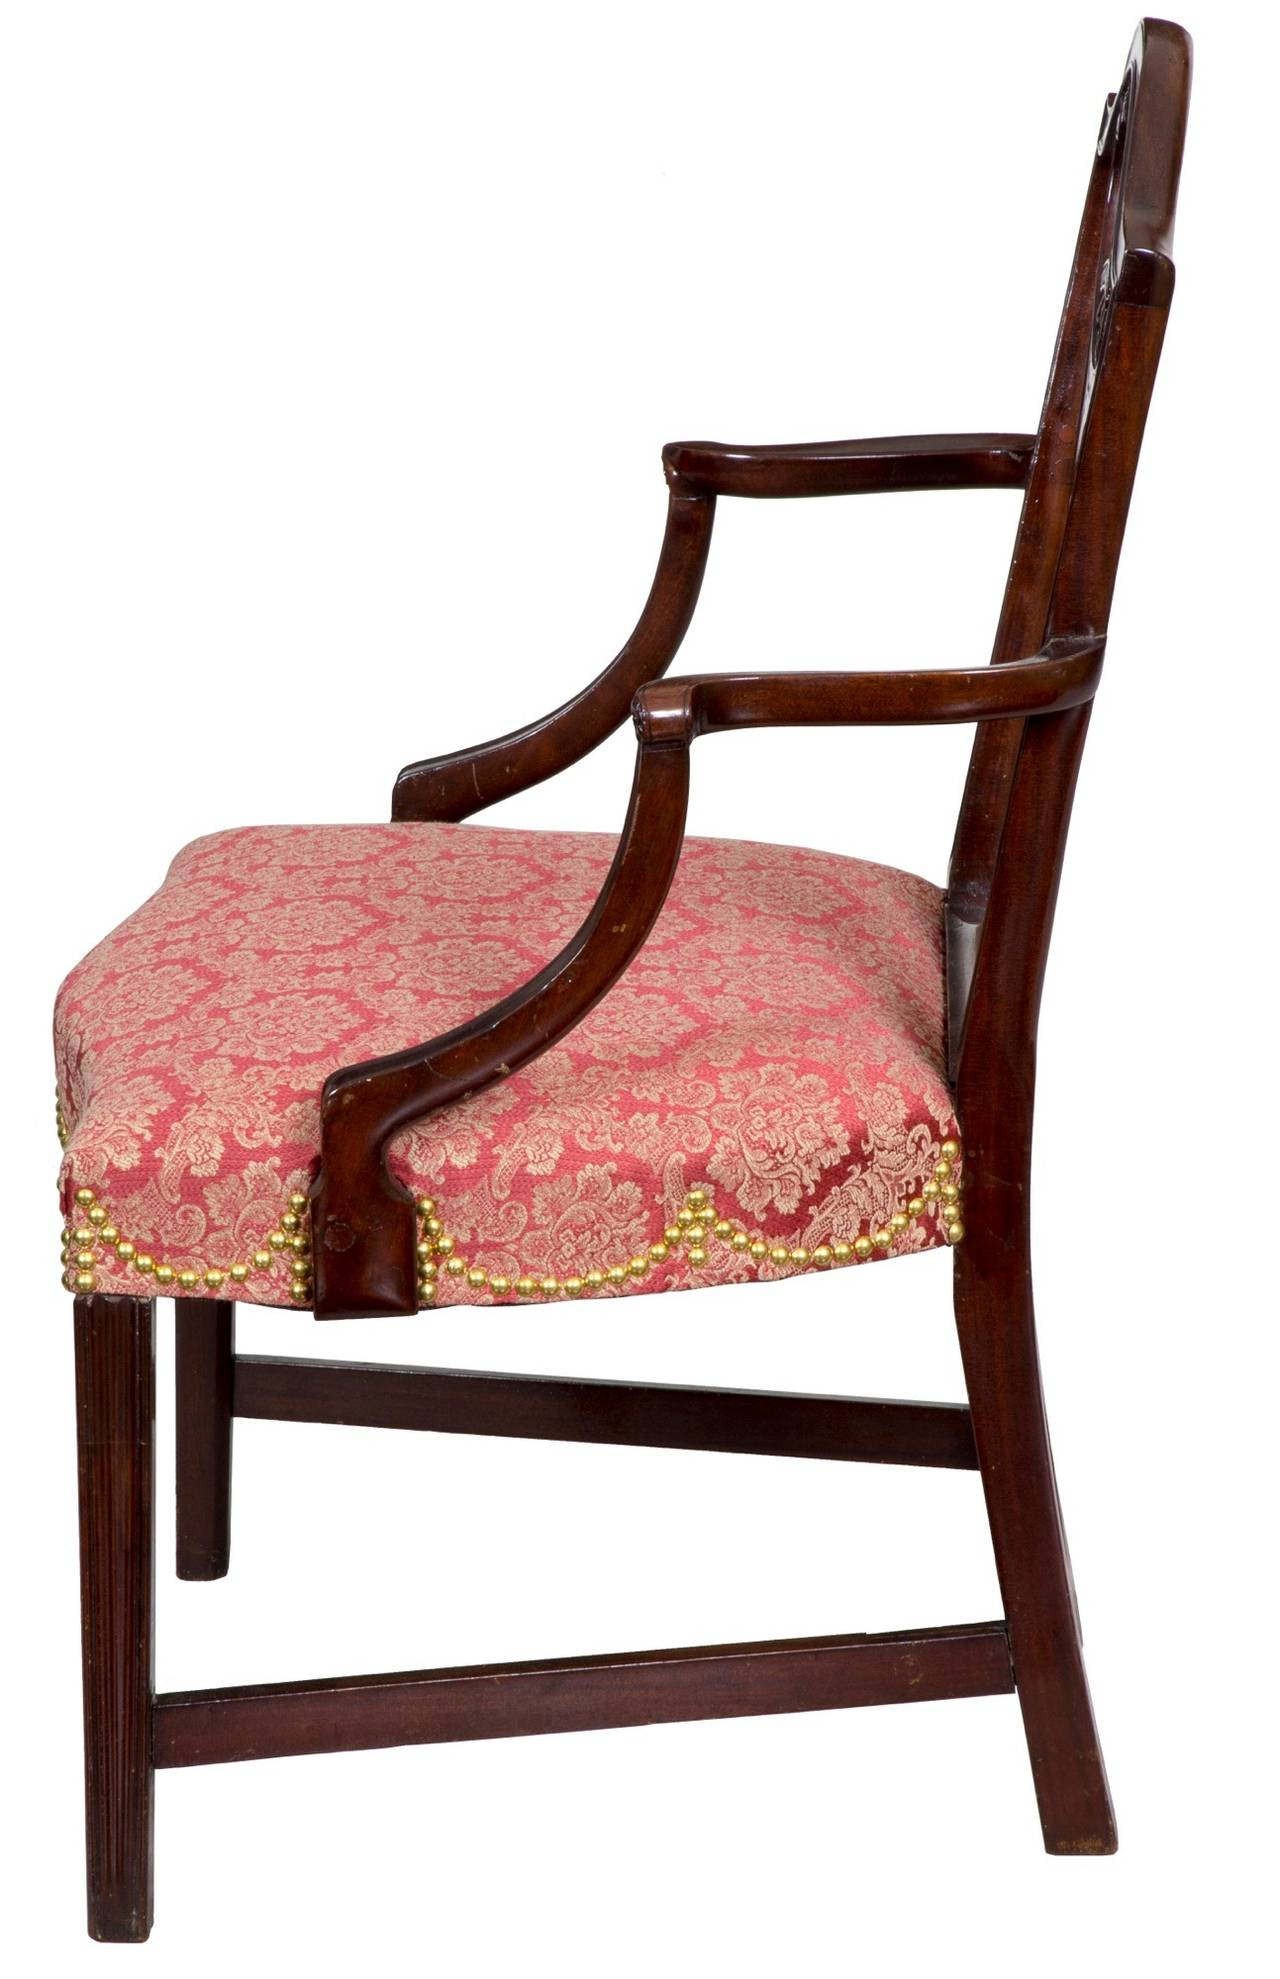 Hepplewhite Shield Back Armchair, Mahogany, New York, circa 1790 In Excellent Condition For Sale In Providence, RI